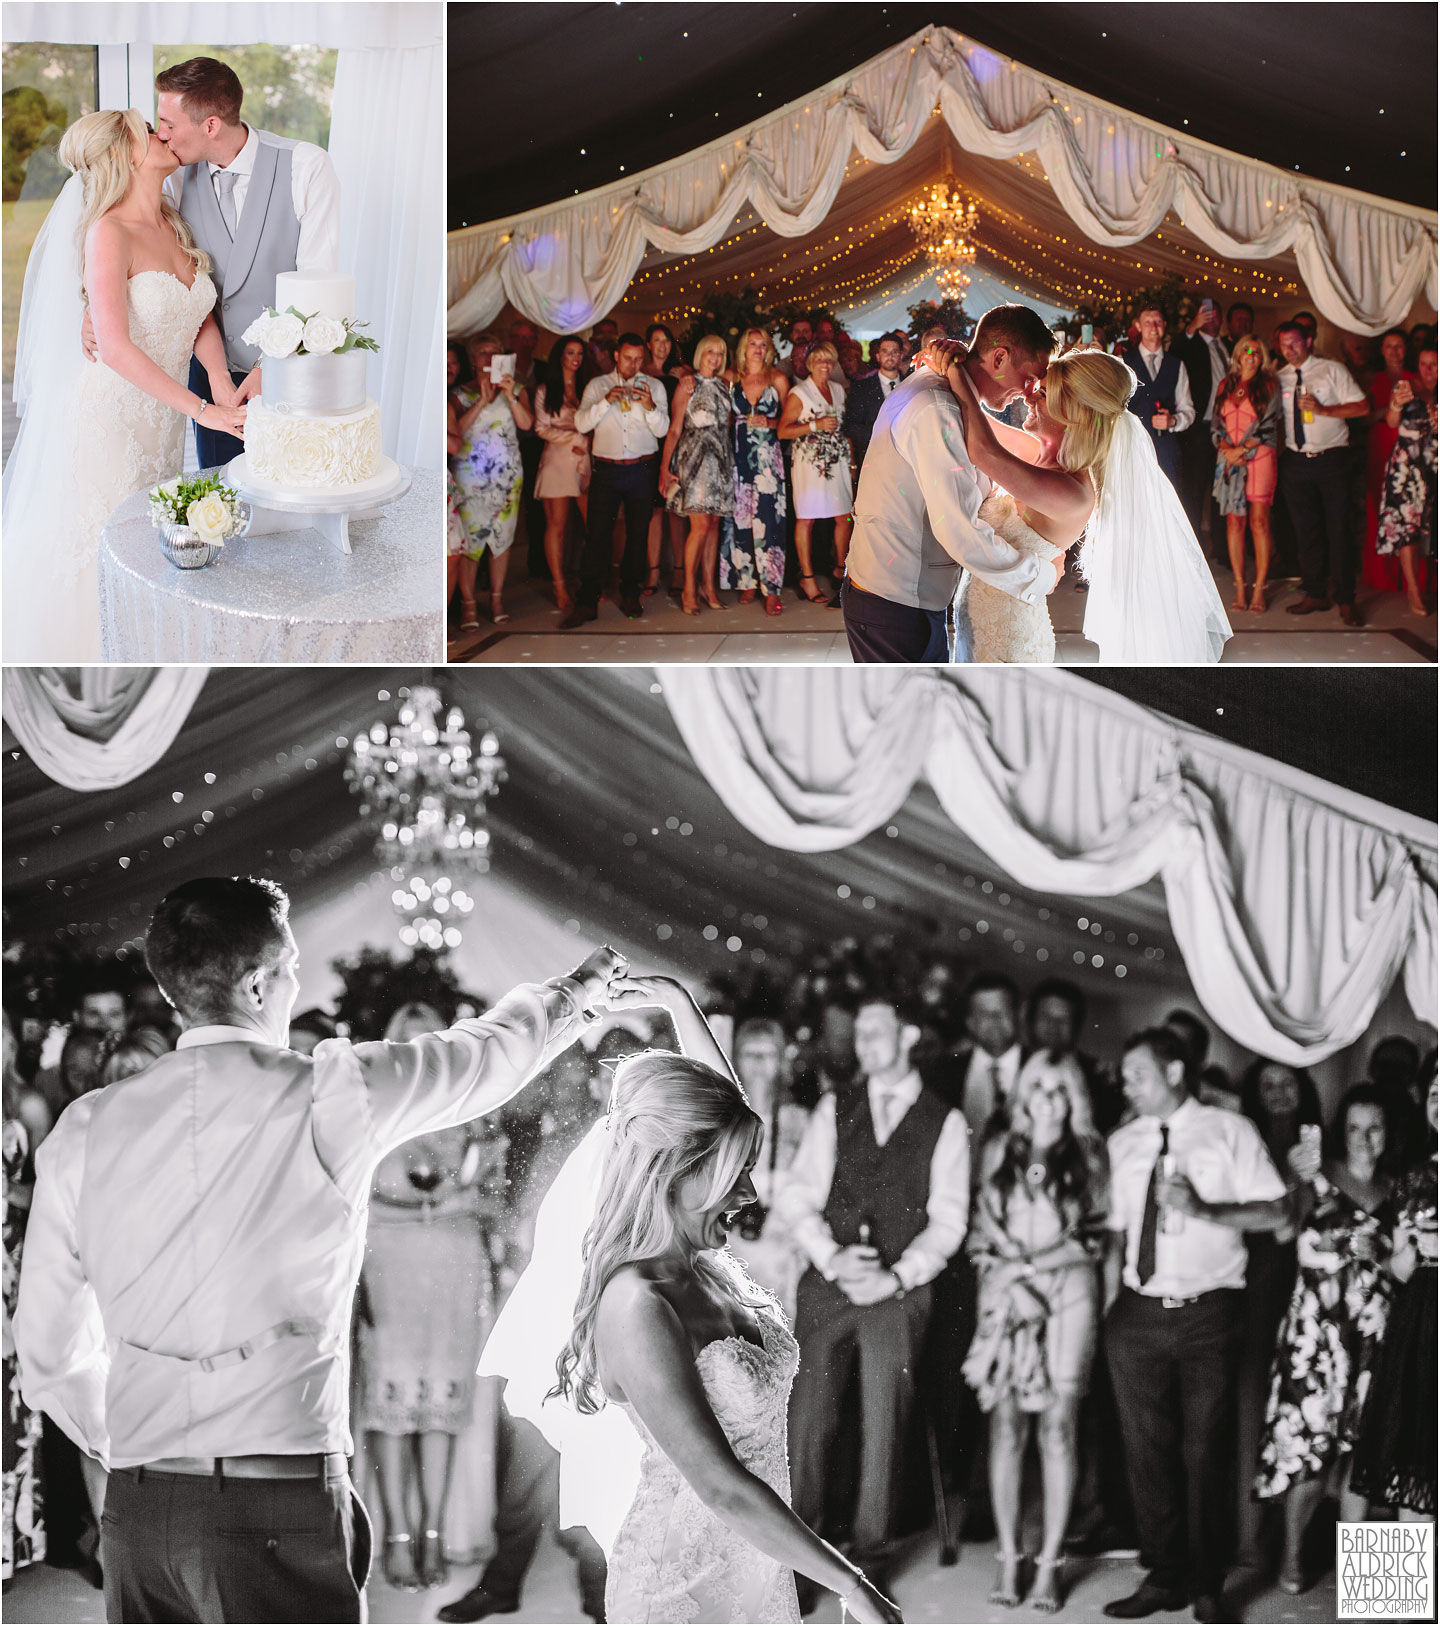 Cake cut and first dance at Priory Cottages Wetherby